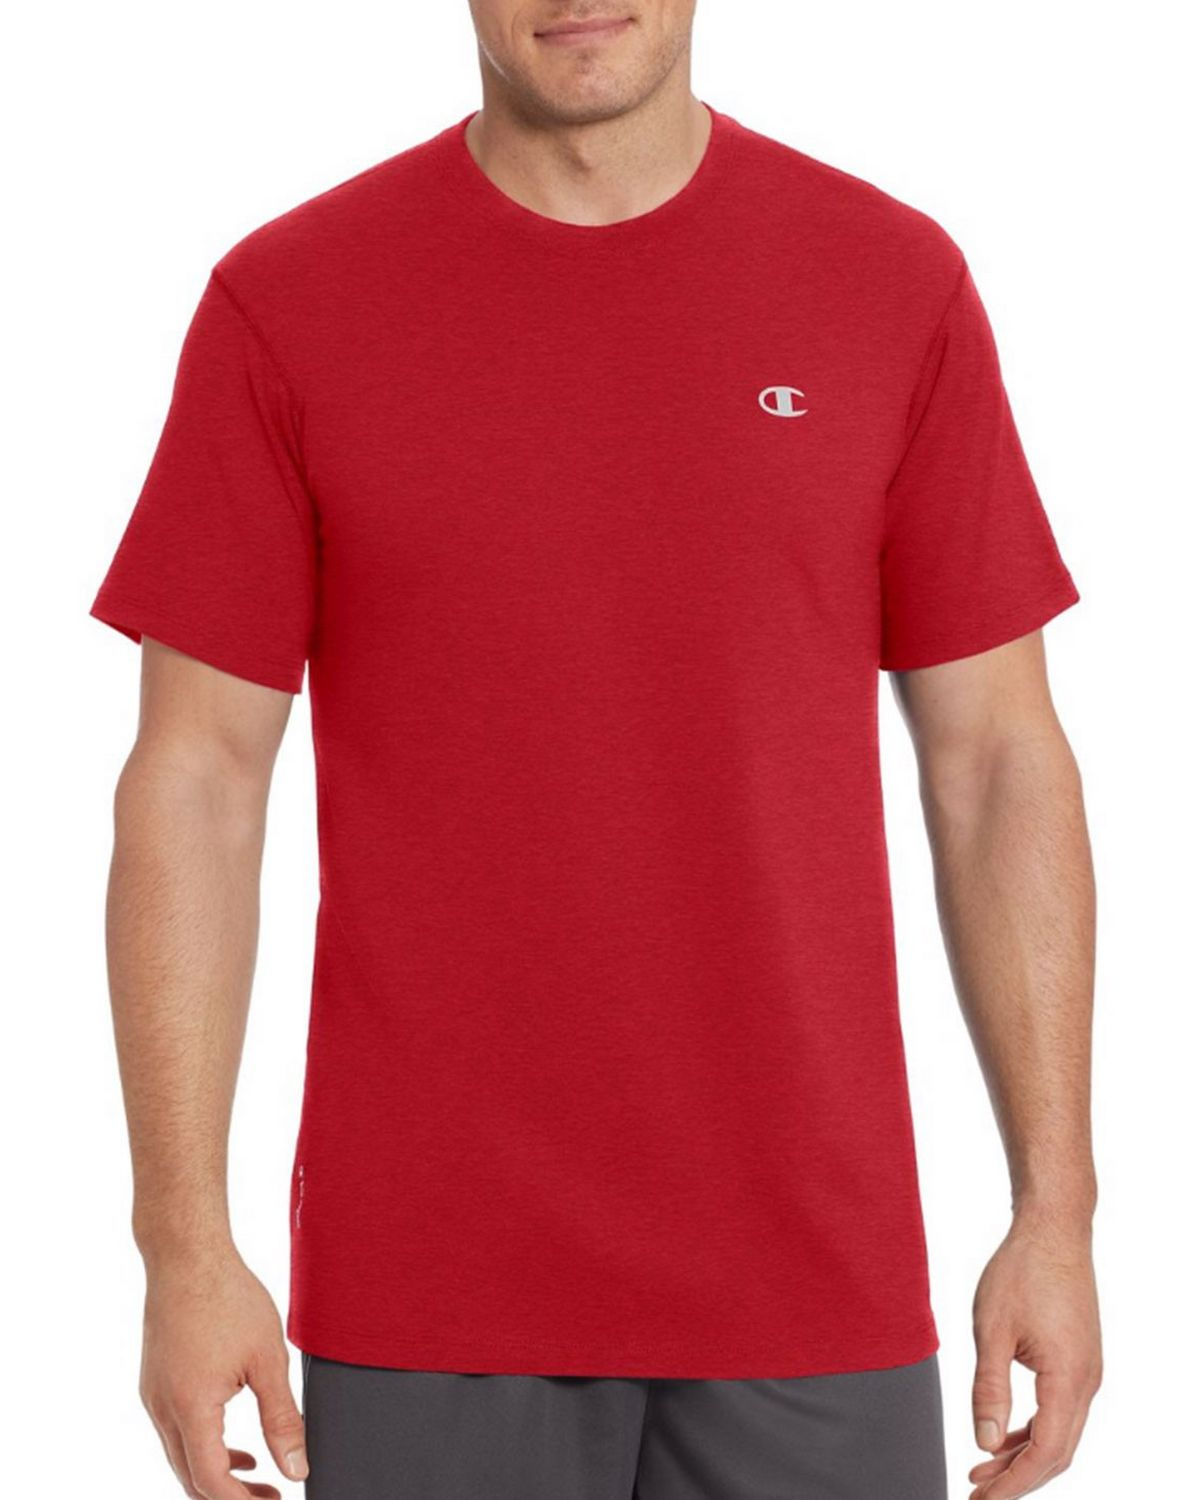 Champion T0351 Vapor Mens Cotton Tee - Navy - XL T0351